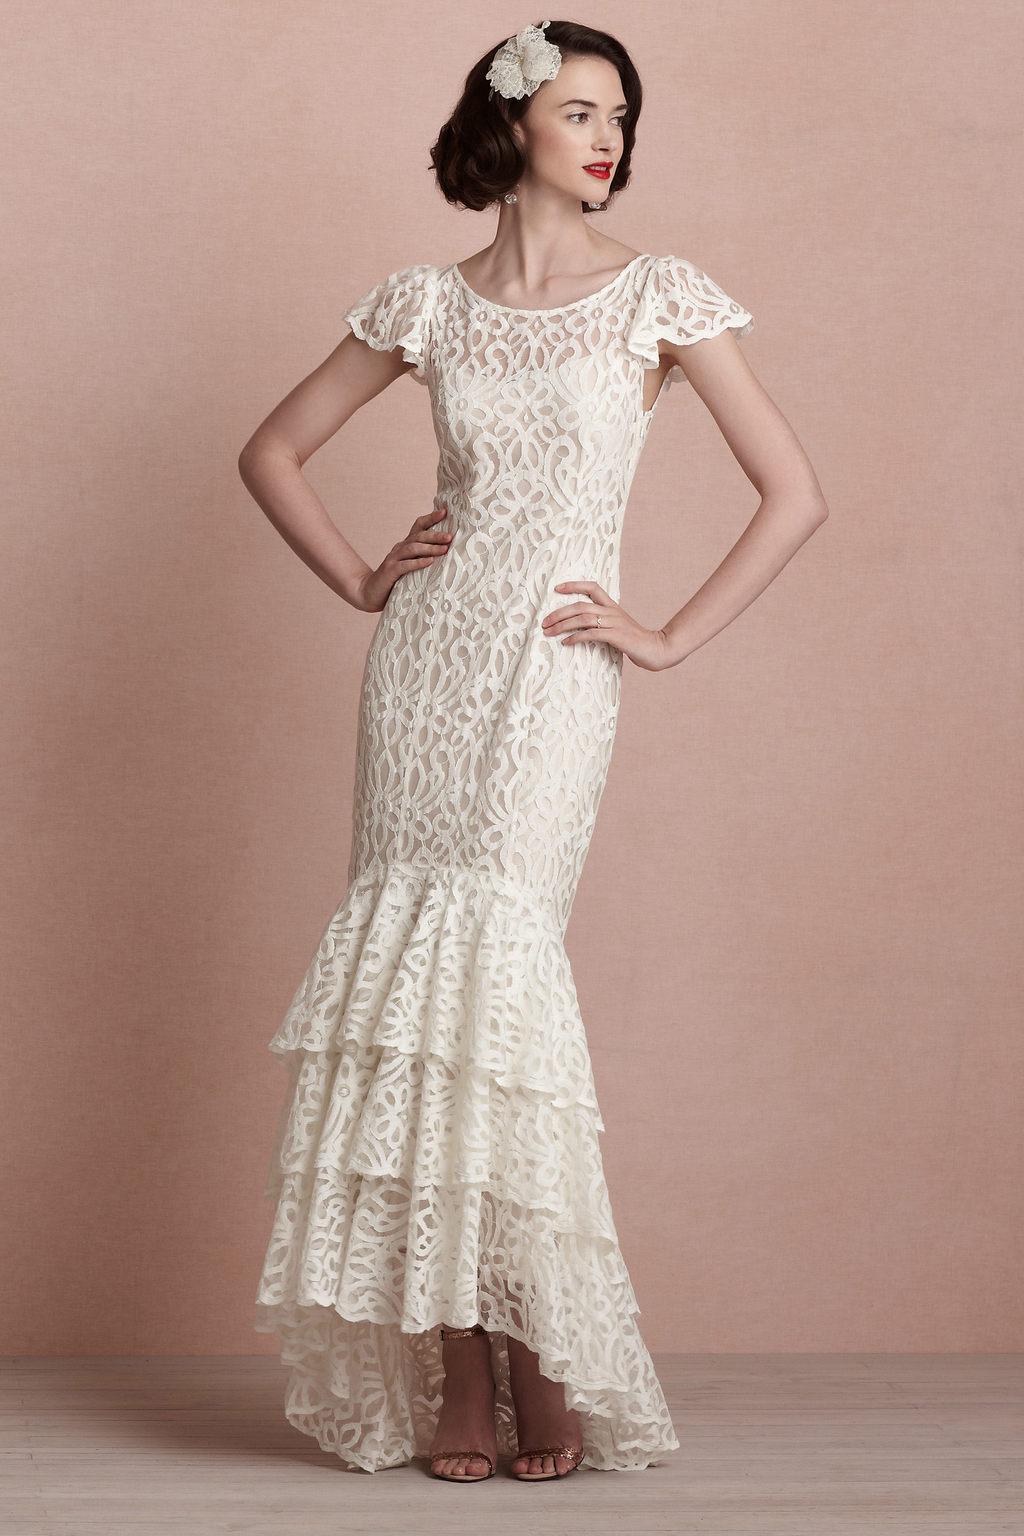 New-bhldn-wedding-dress-for-brides-wedding-giveaway-3.full